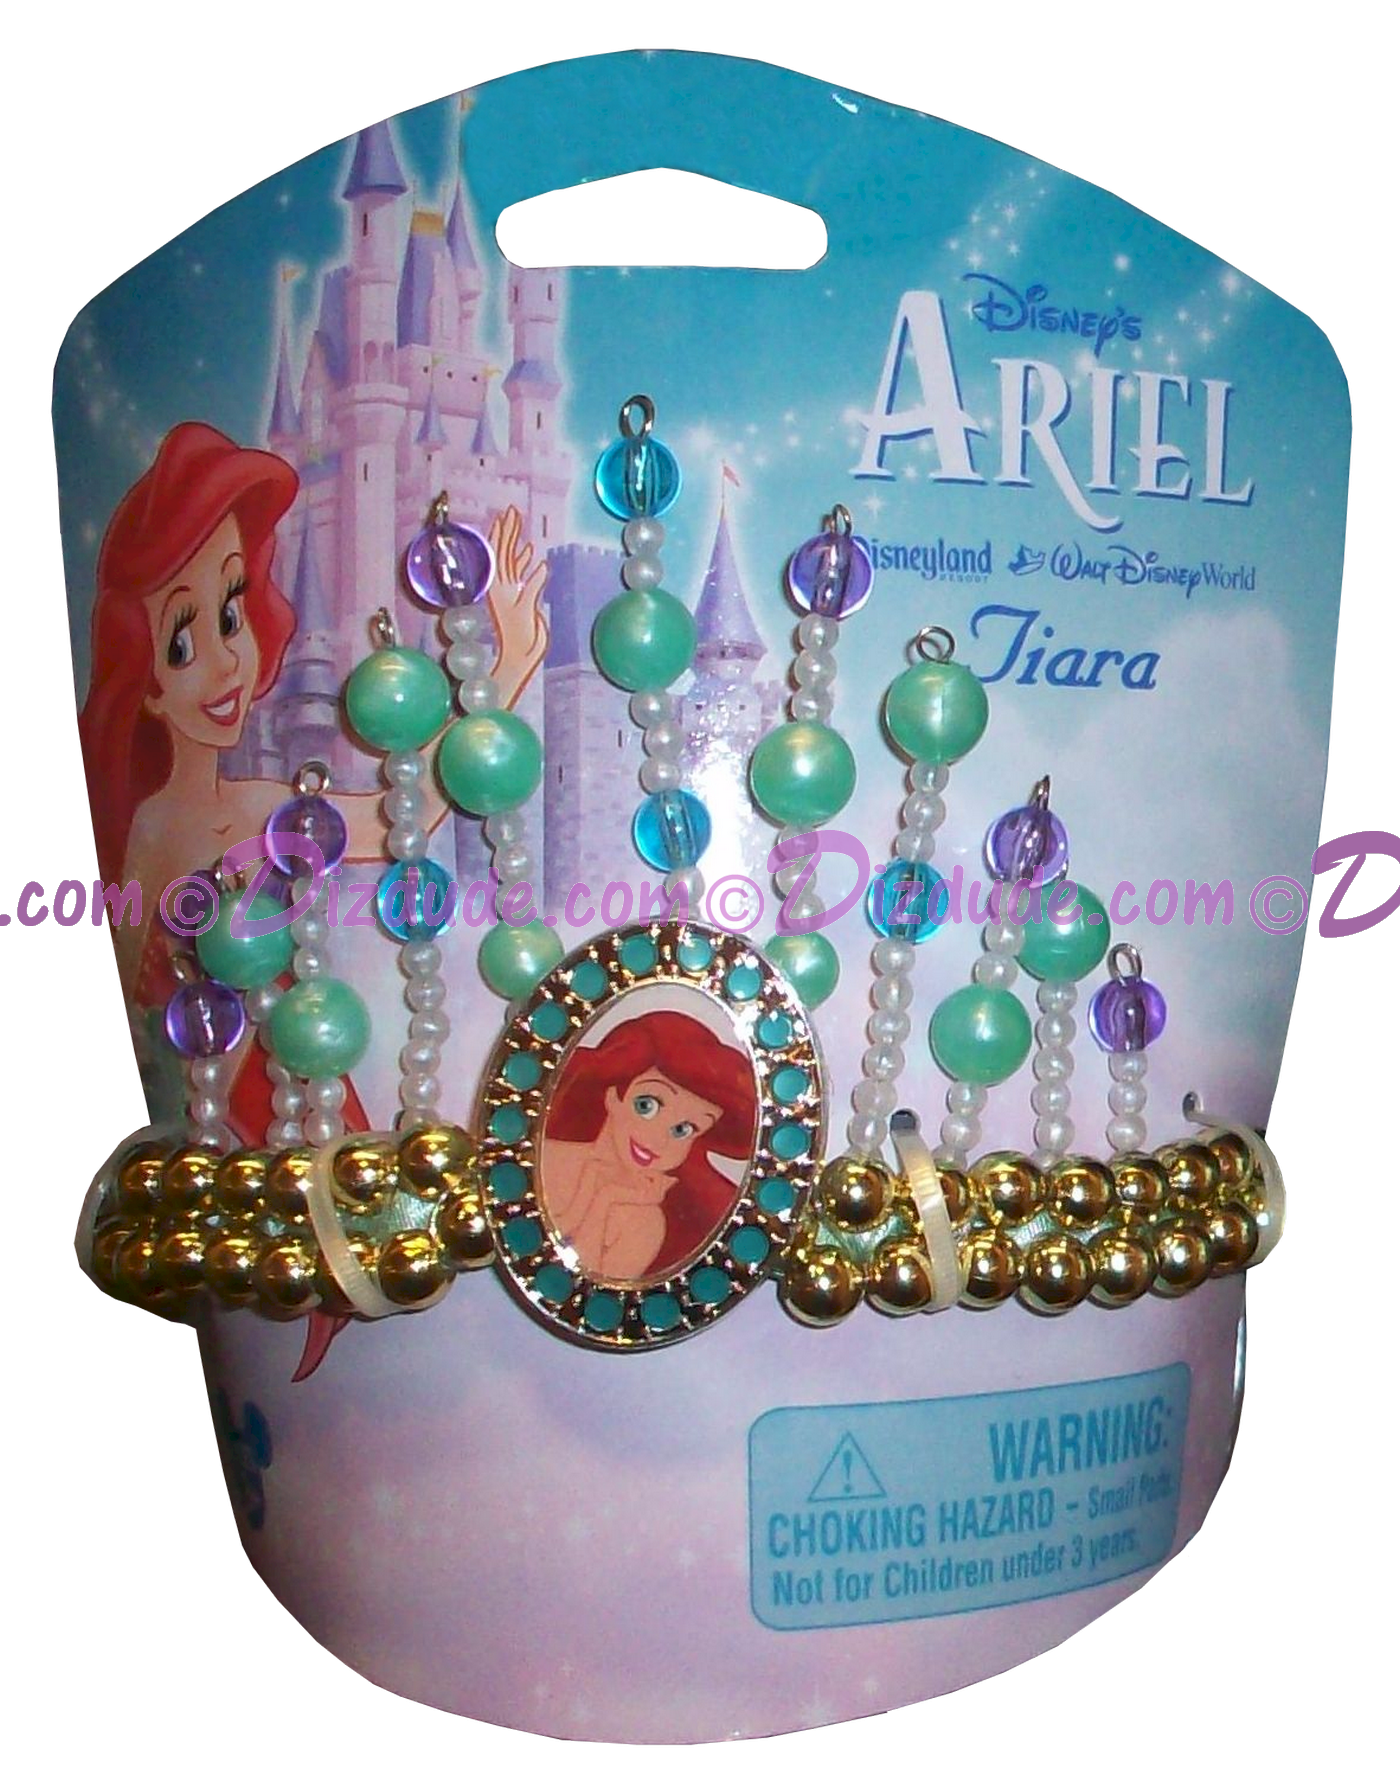 (SOLD OUT) Disney Theme Park Princess Ariel Tiara